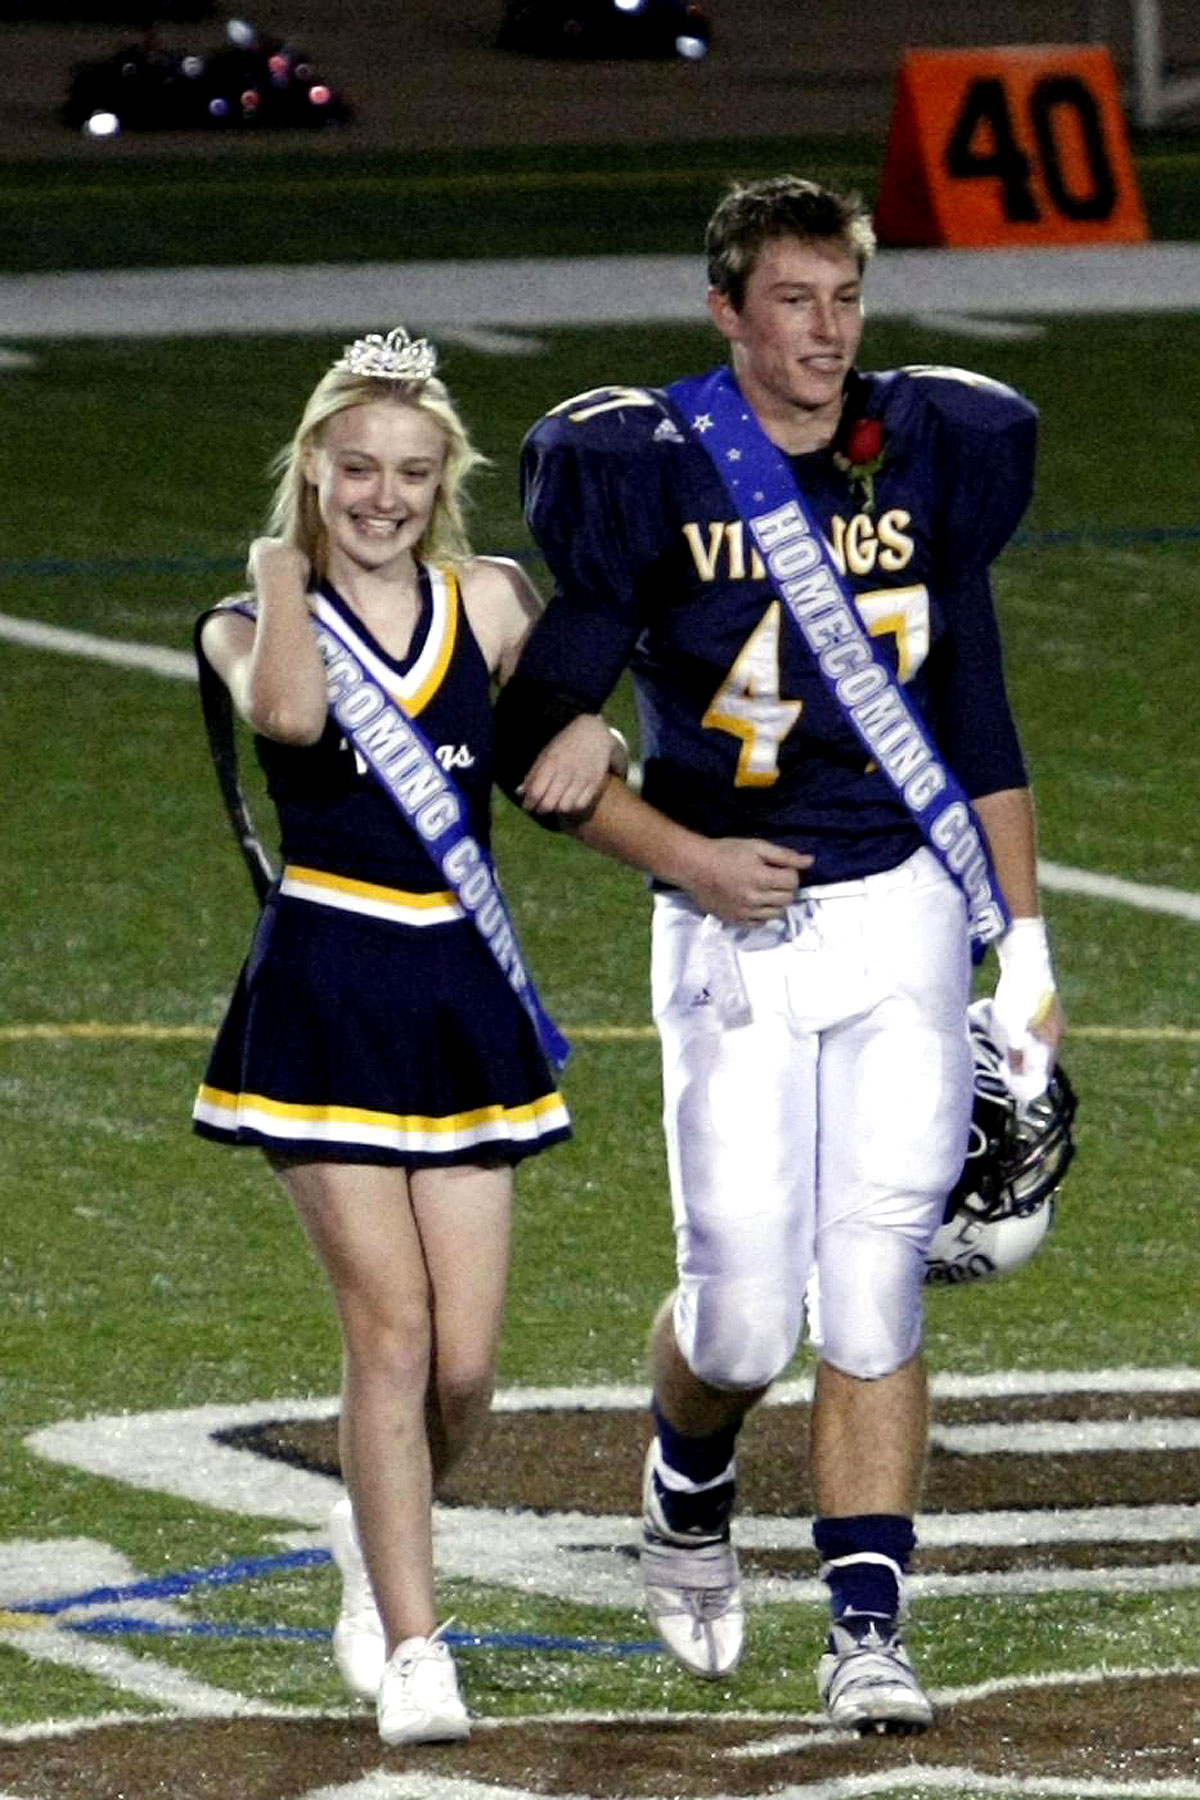 PHOTO GALLERY: Dakota Fanning is Homecoming Princess